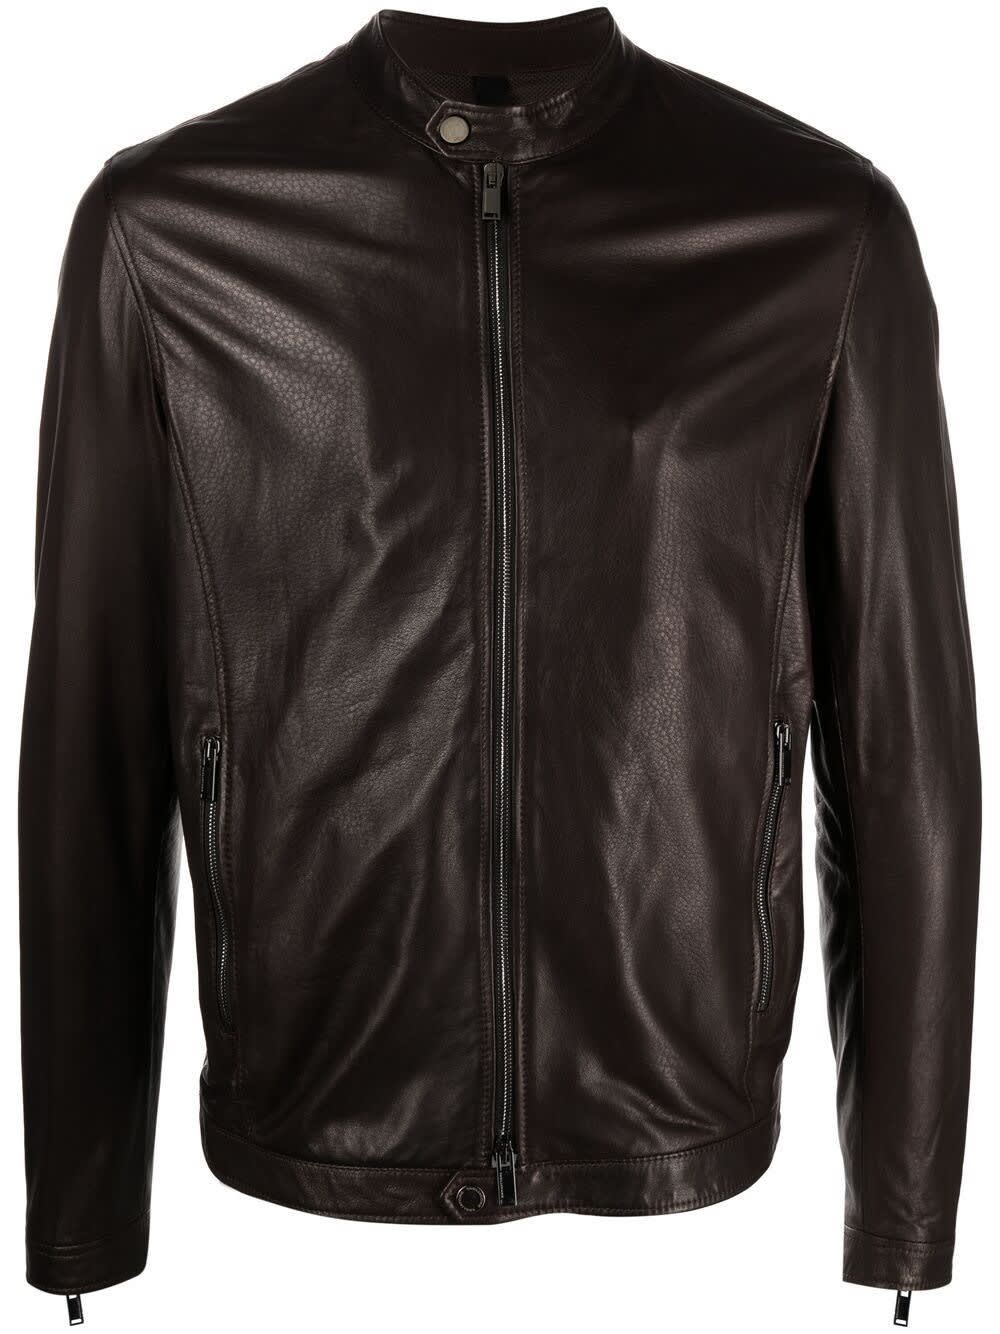 Tagliatore STANLEY JACKET IN BROWN LEATHER